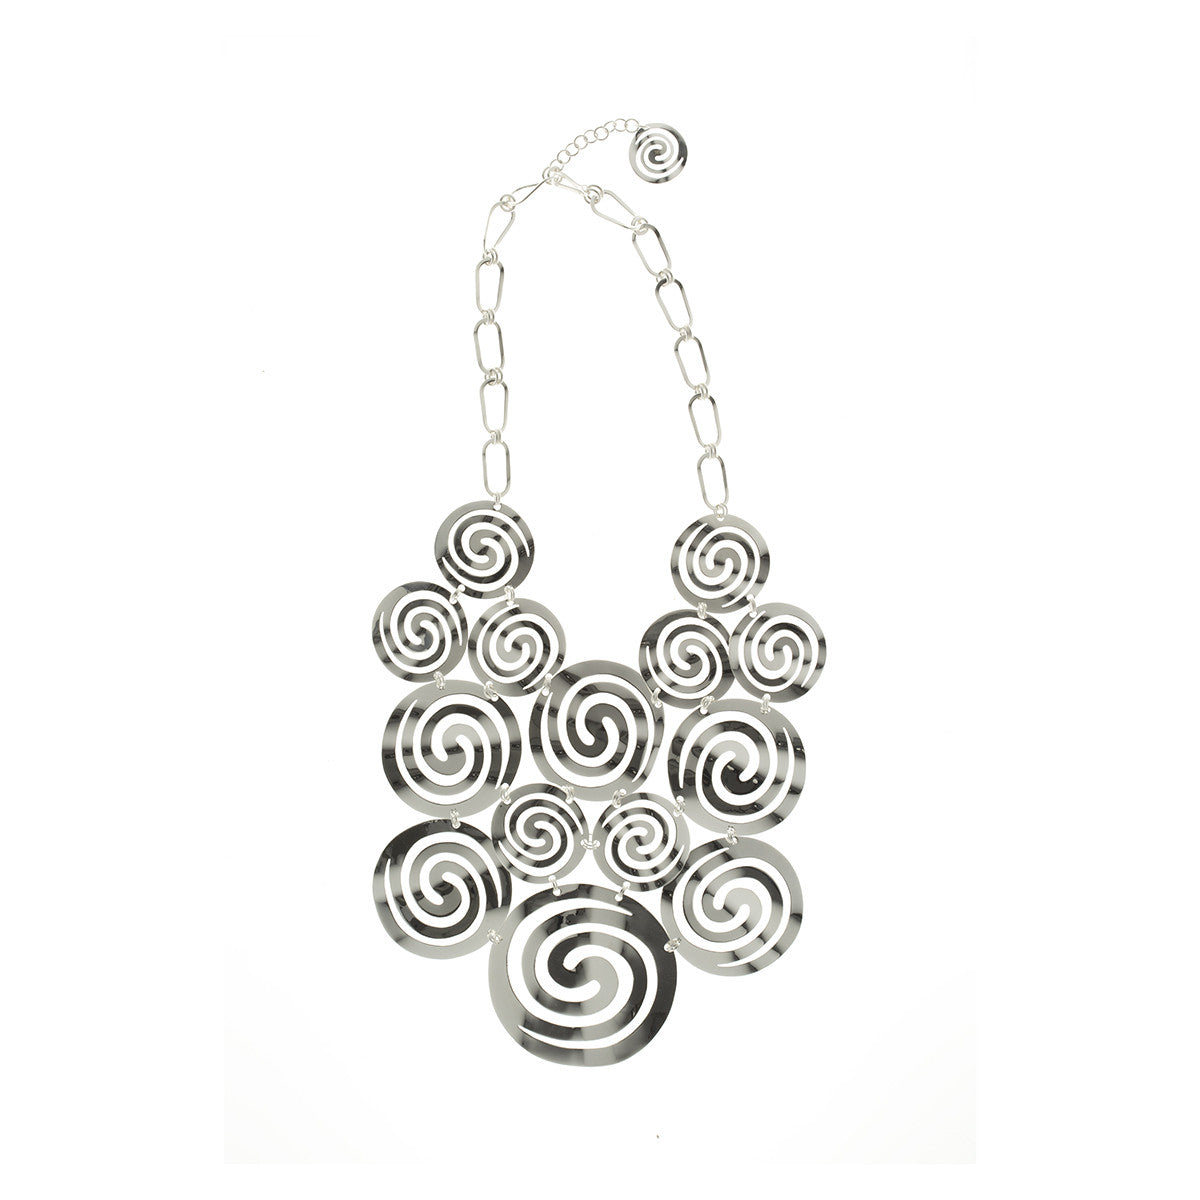 Sidereal  Silver Spiral Runway Necklace - MCK Brands